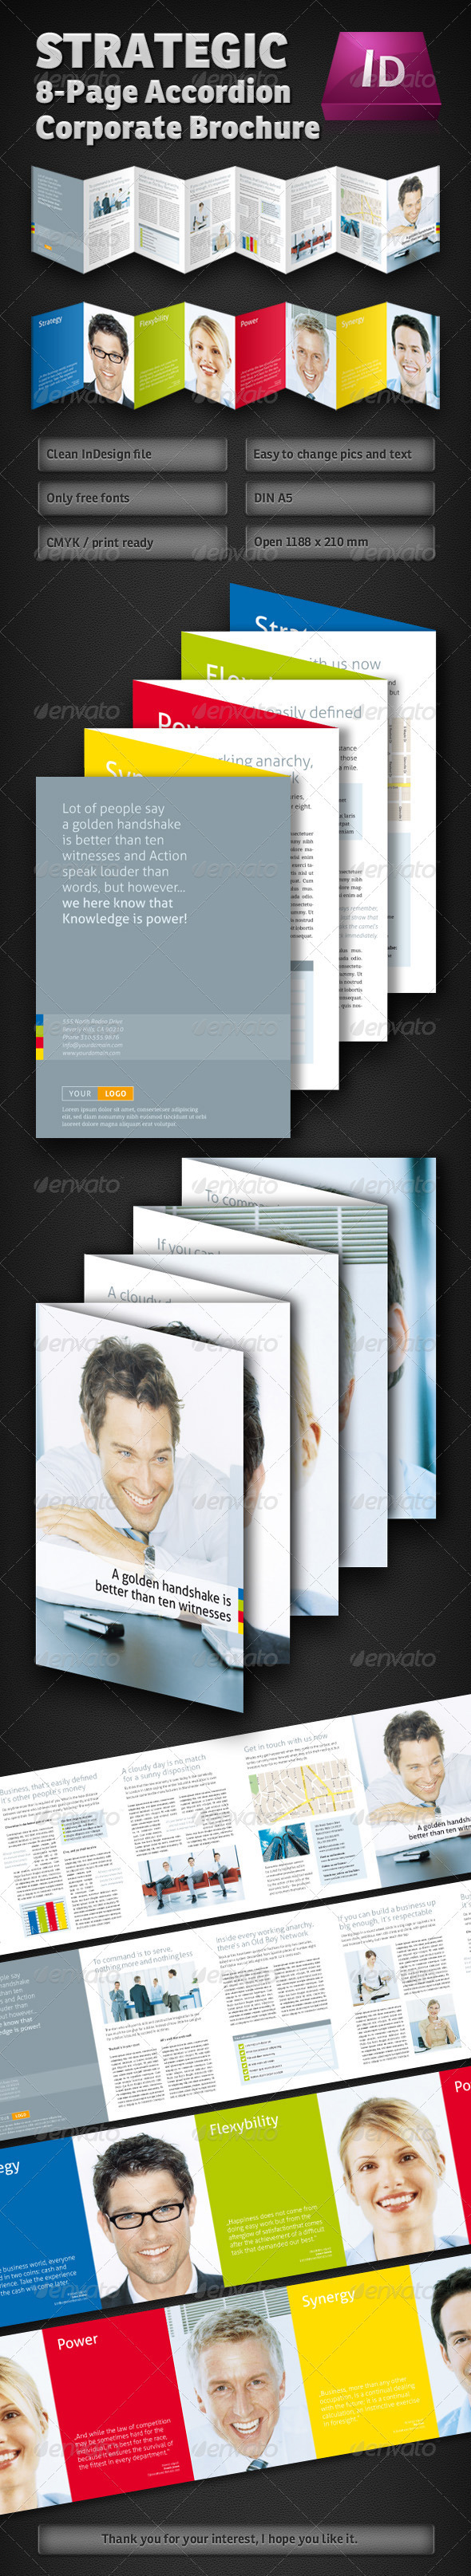 GraphicRiver Strategic 8-Page Accordion Fold Brochure 1629442